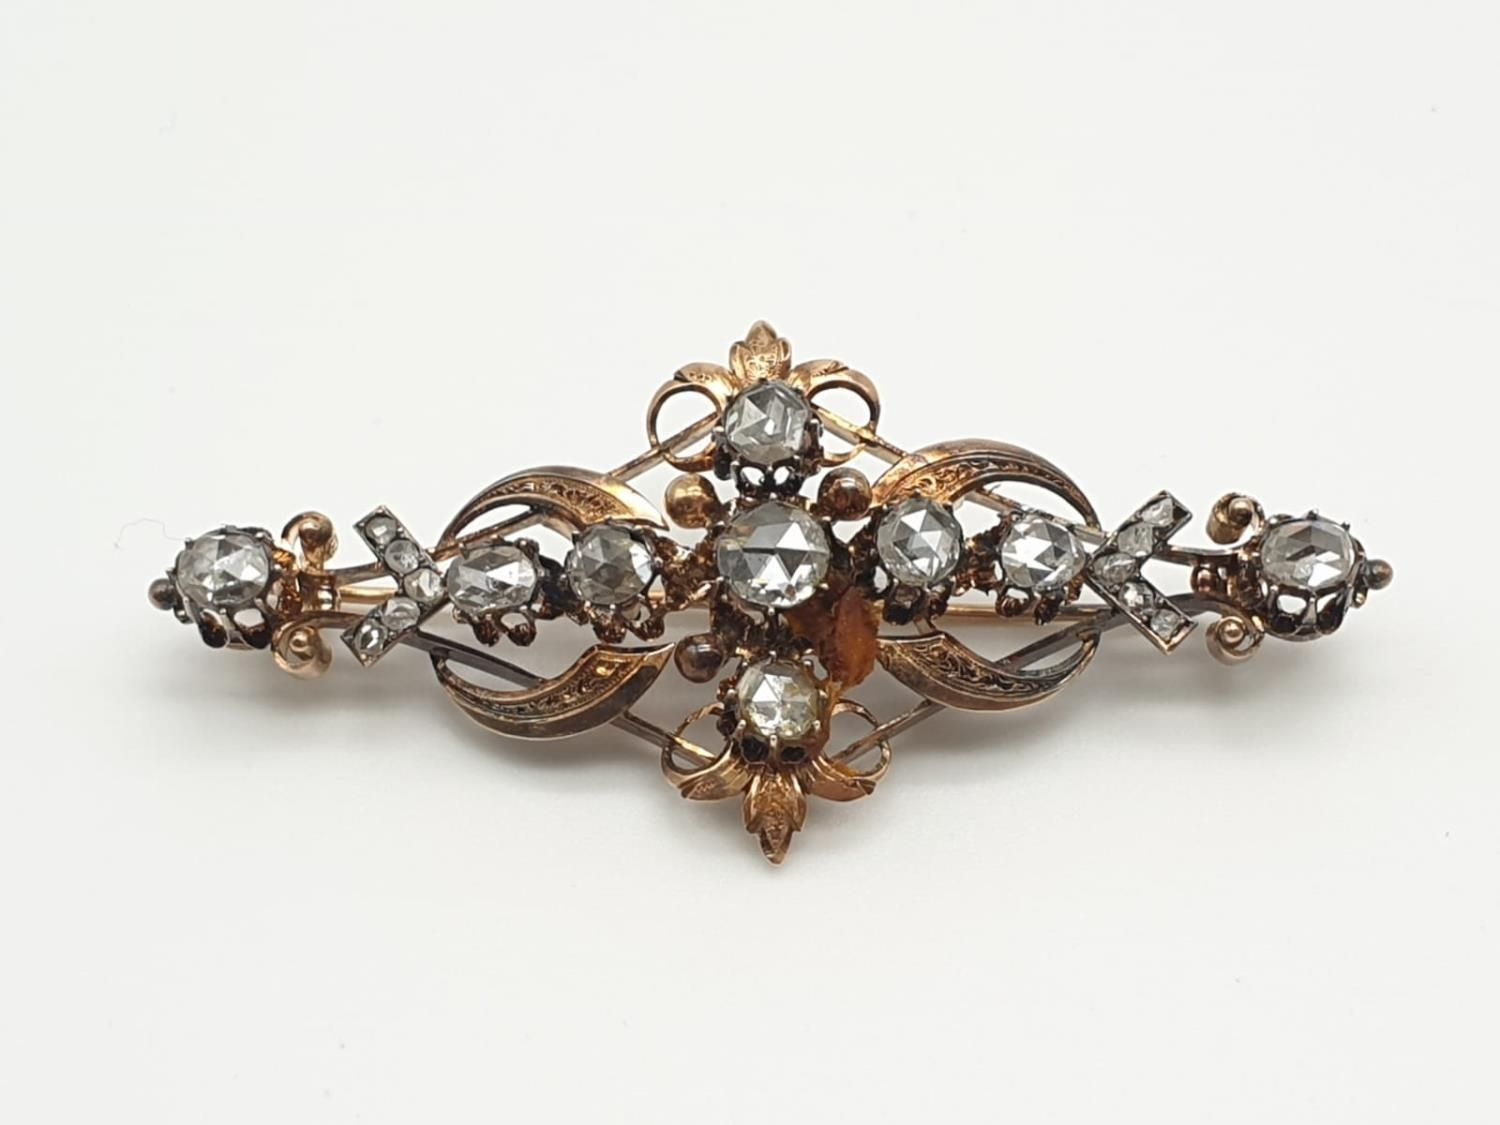 Impressive Antique Edwardian rose gold brooch with over 3ct of rose diamonds, weight 9.1g and 7cm